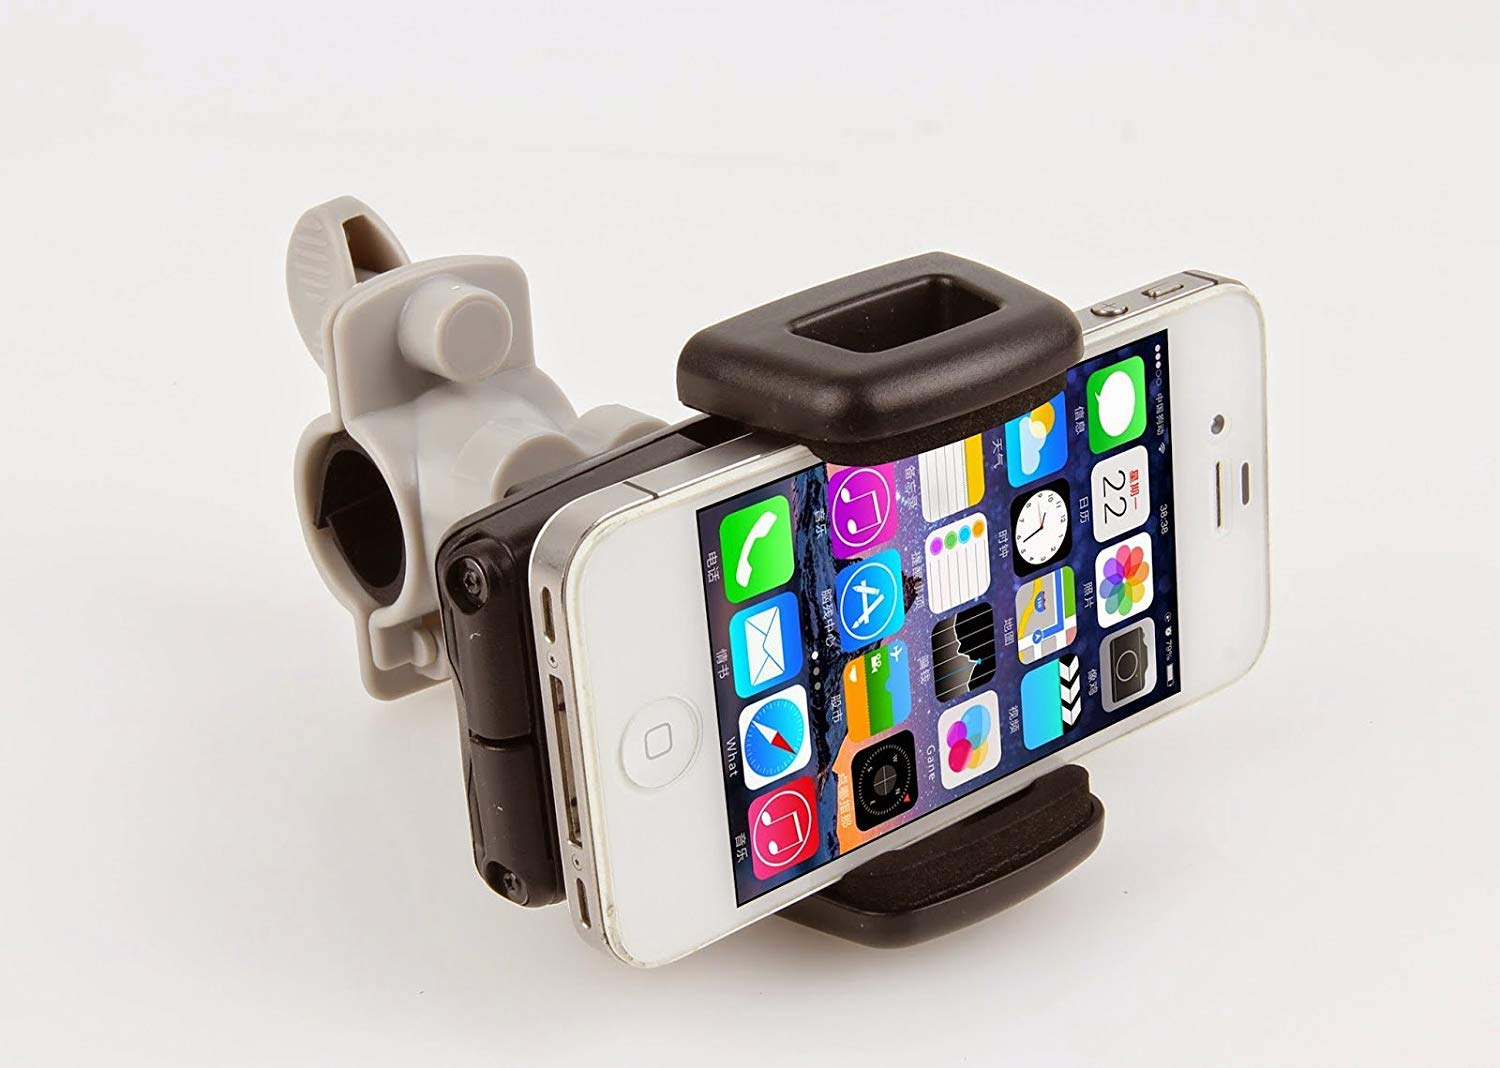 Boating GPS Rubber Strap IBRA Bike Phone Mount Bicycle Holder Other Devices,360 Degrees Rotatable Universal Cradle Clamp for iOS Android Smartphone IBRA® S093